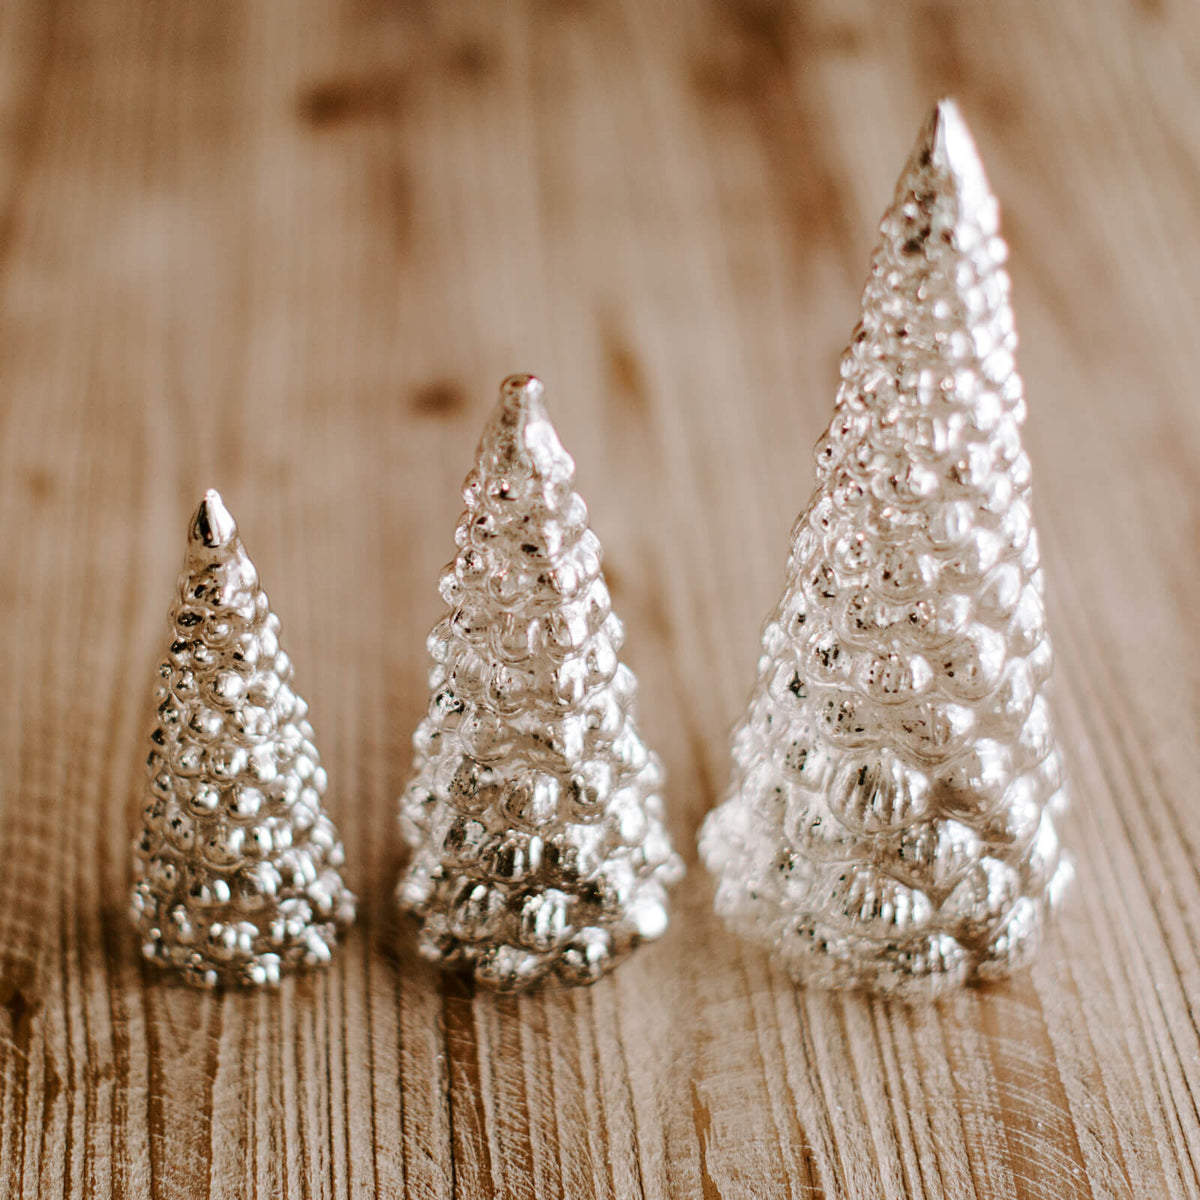 Group of clear and silver mercury glass Christmas trees in 3 different sizes on a wooden tabletop